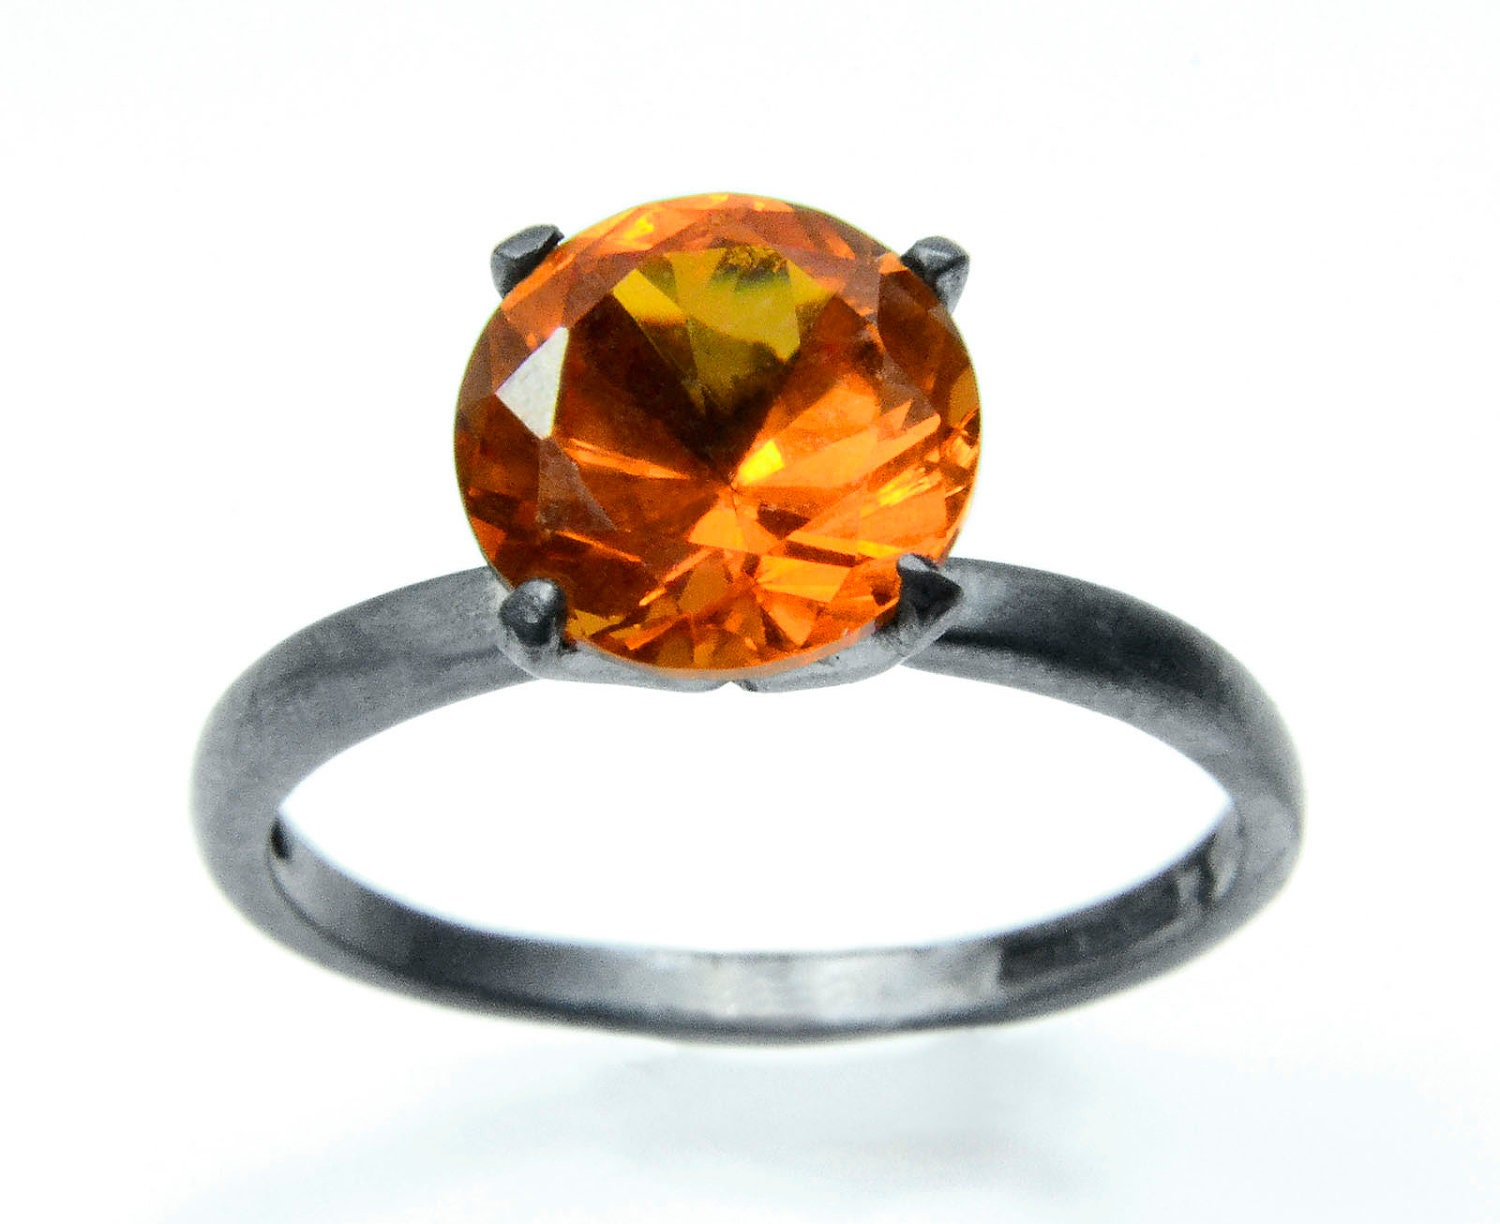 Orange Sapphire Ring in Sterling Silver, Blackened Silver Cocktail Ring with Padparadsha Sapphire - abishessentials